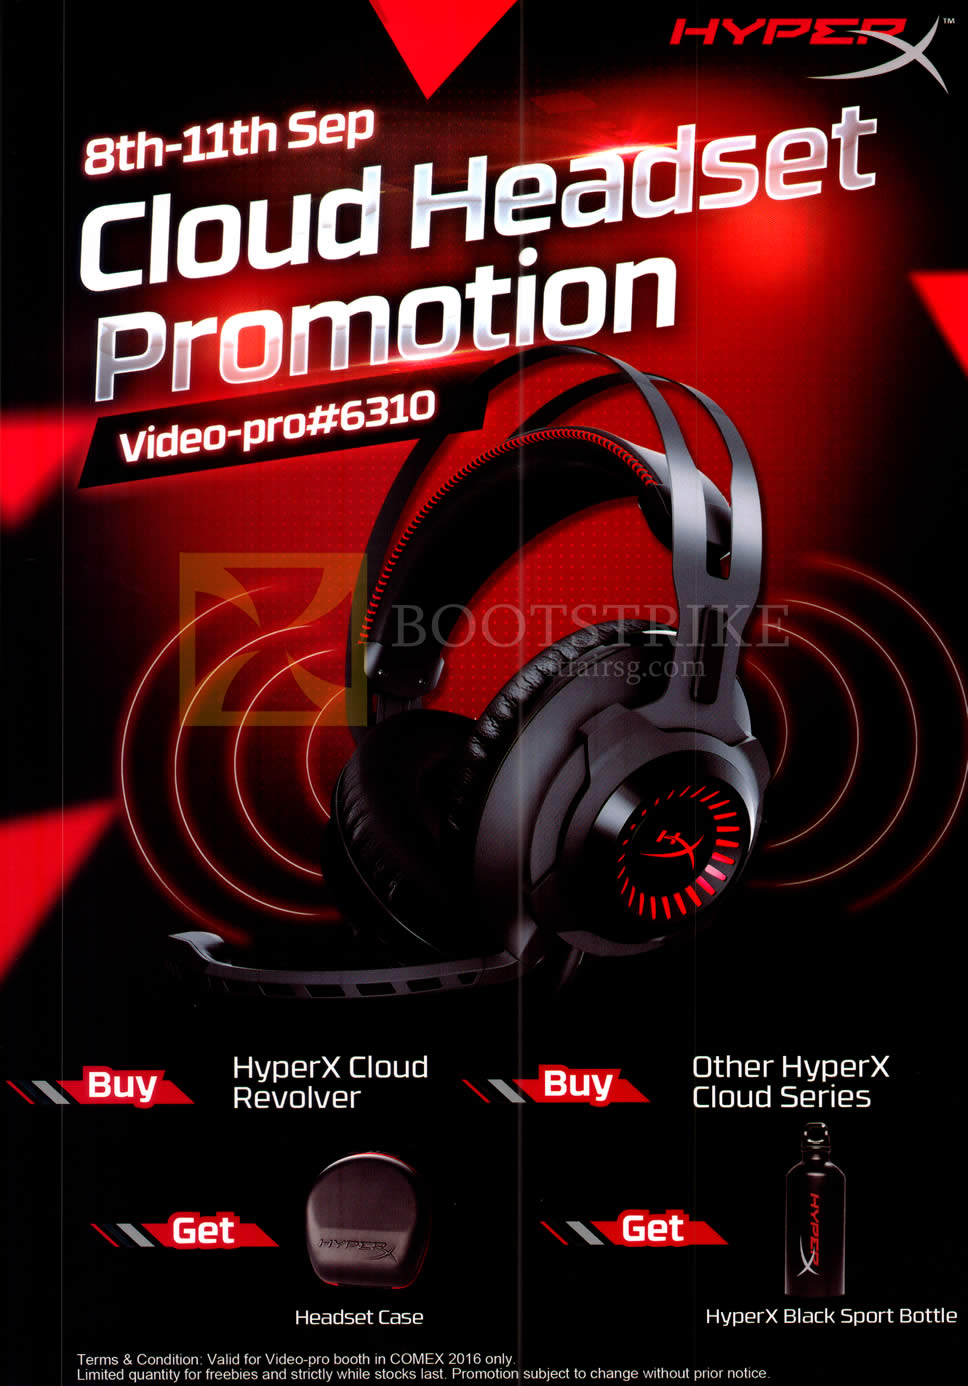 COMEX 2016 price list image brochure of Video-Pro HyperX Cloud Headset